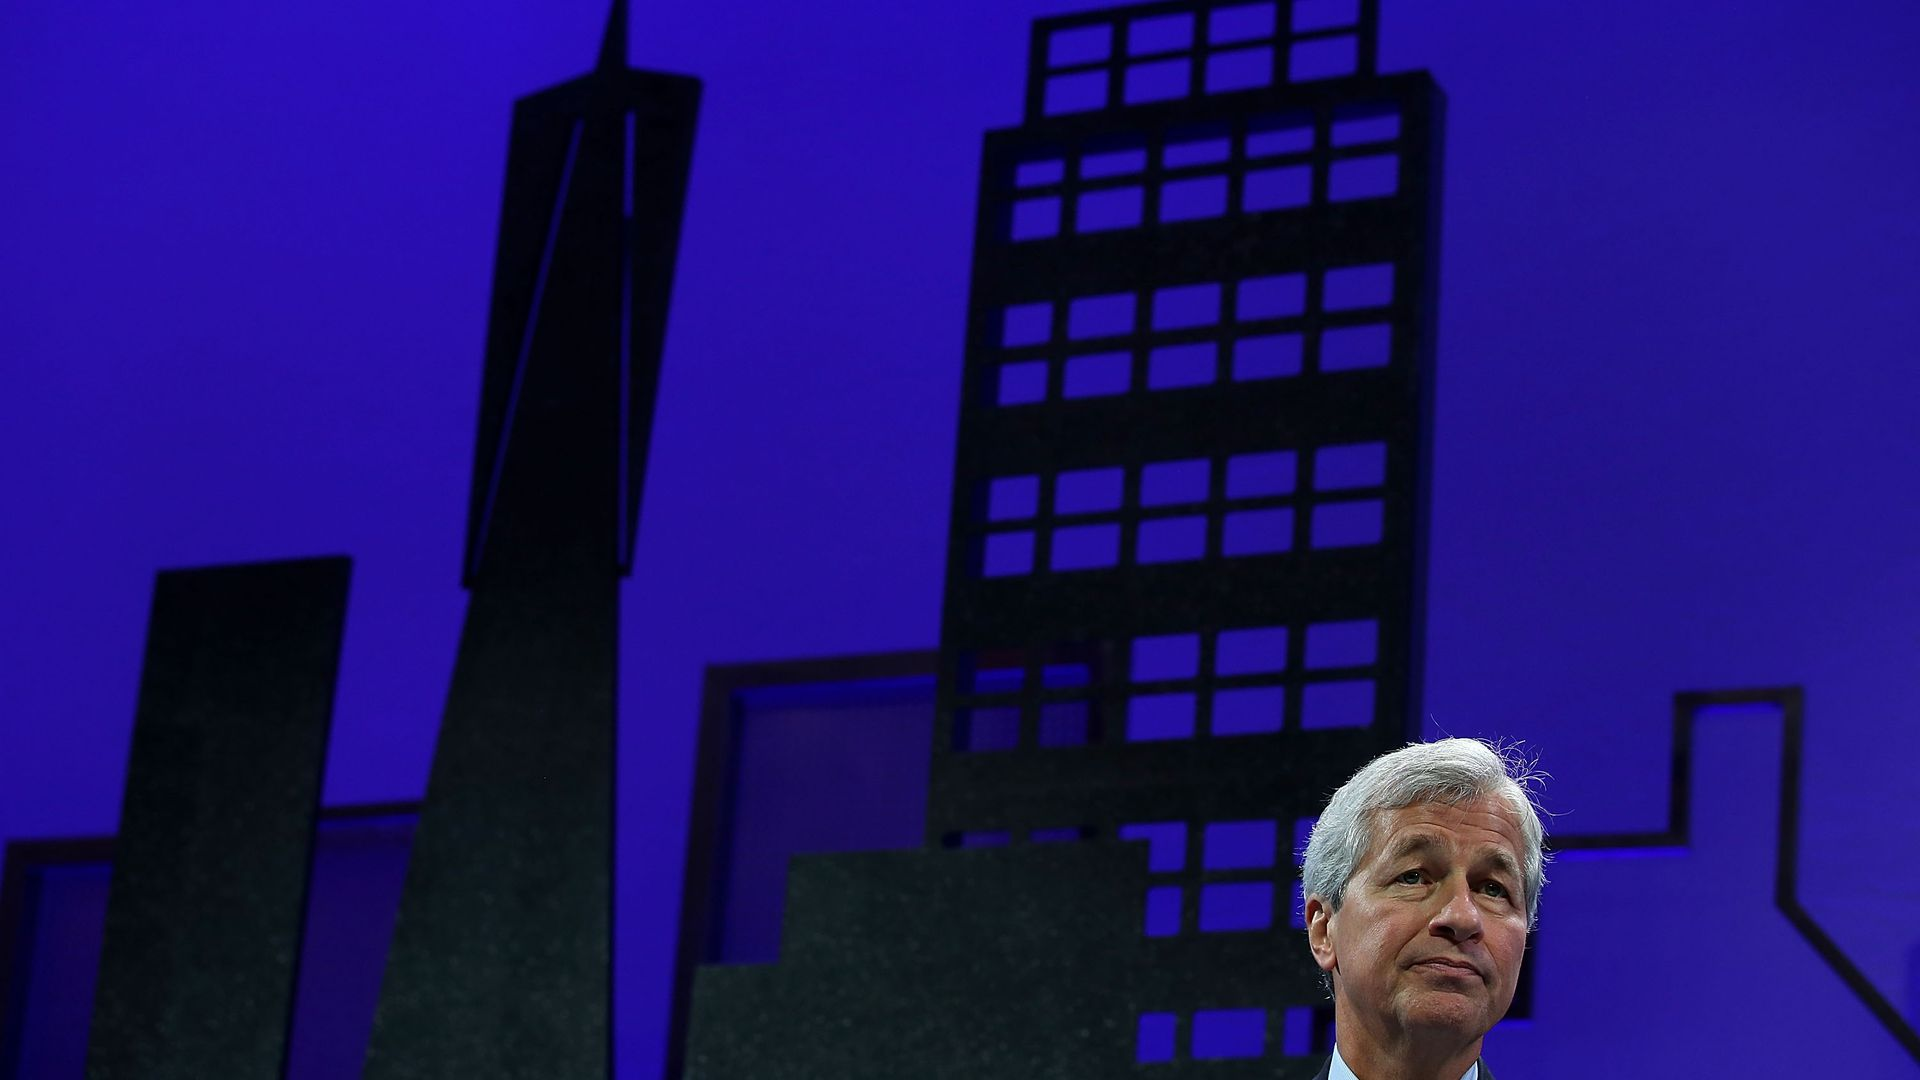 A photo of JPMorgan CEO Jamie Dimon with a cityscape in the background.